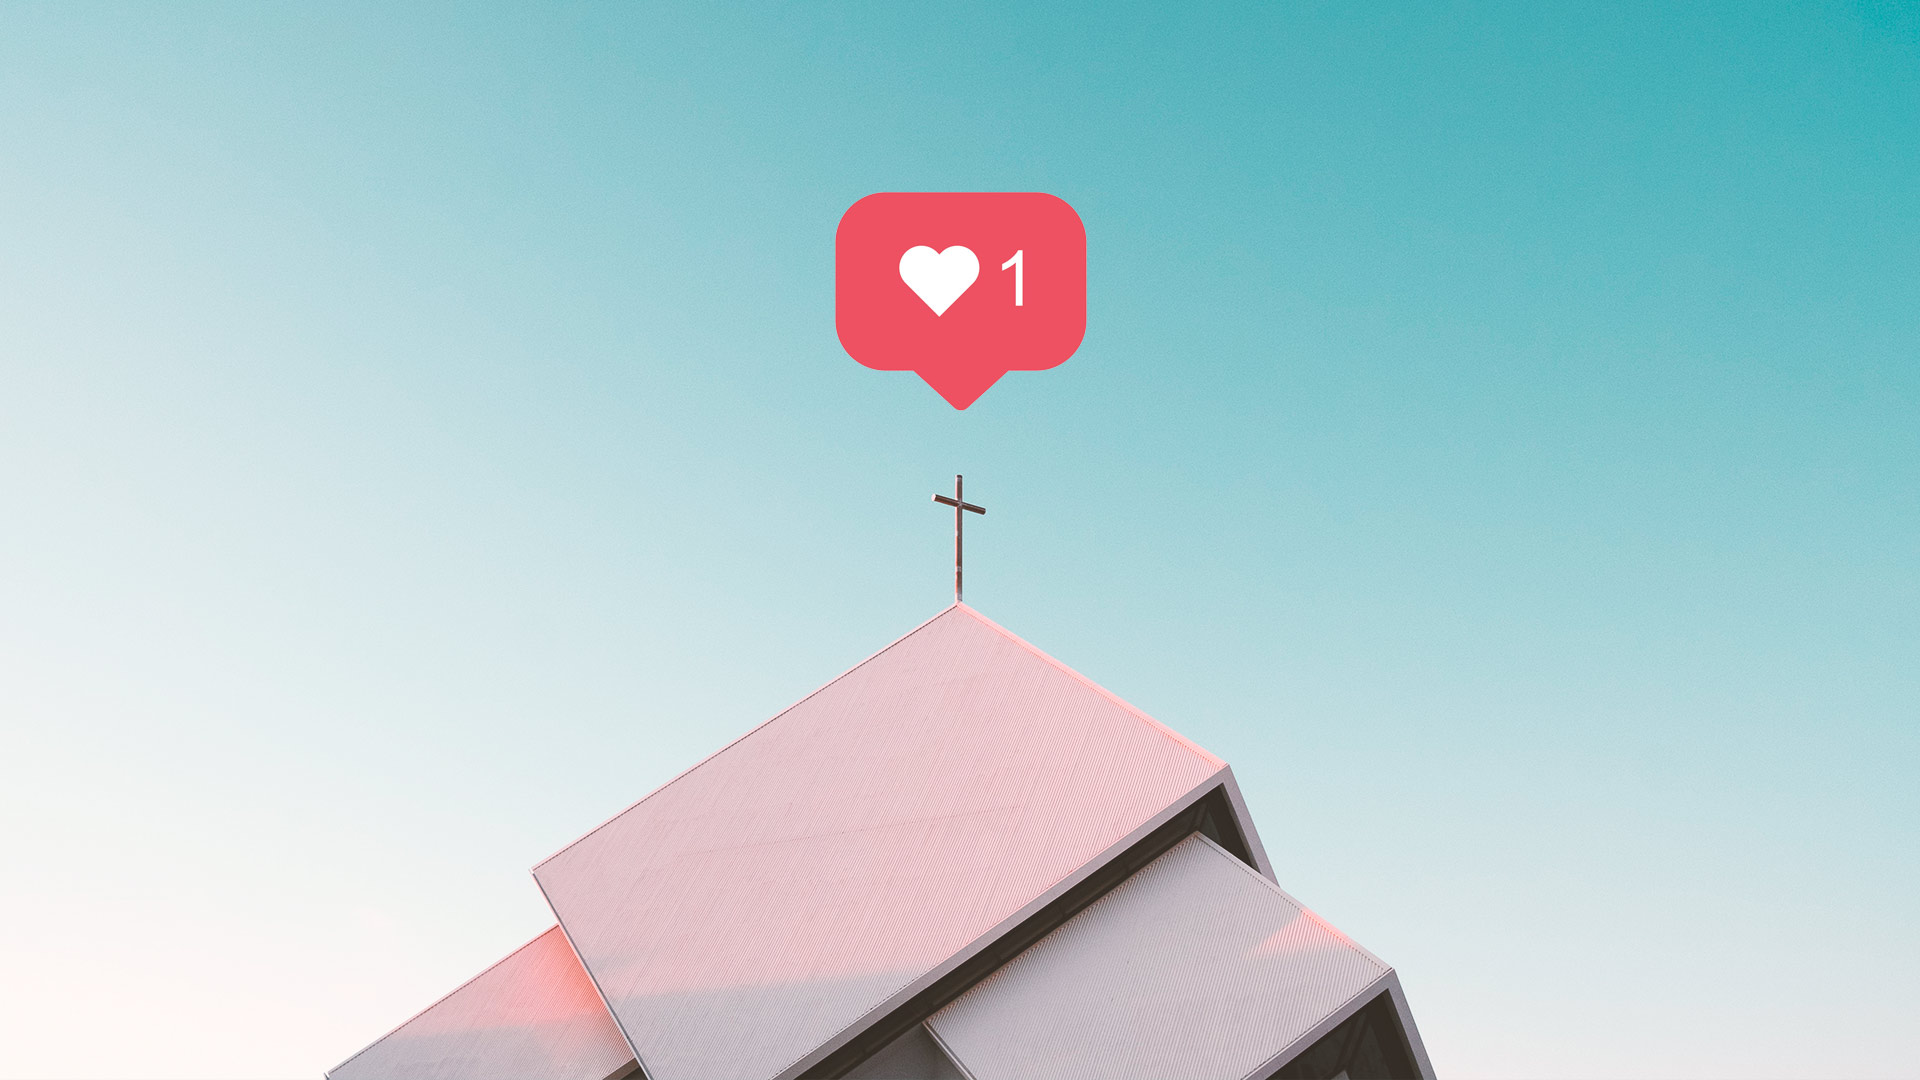 7 Tips For Churches To Use Instagram To Engage With Their Community